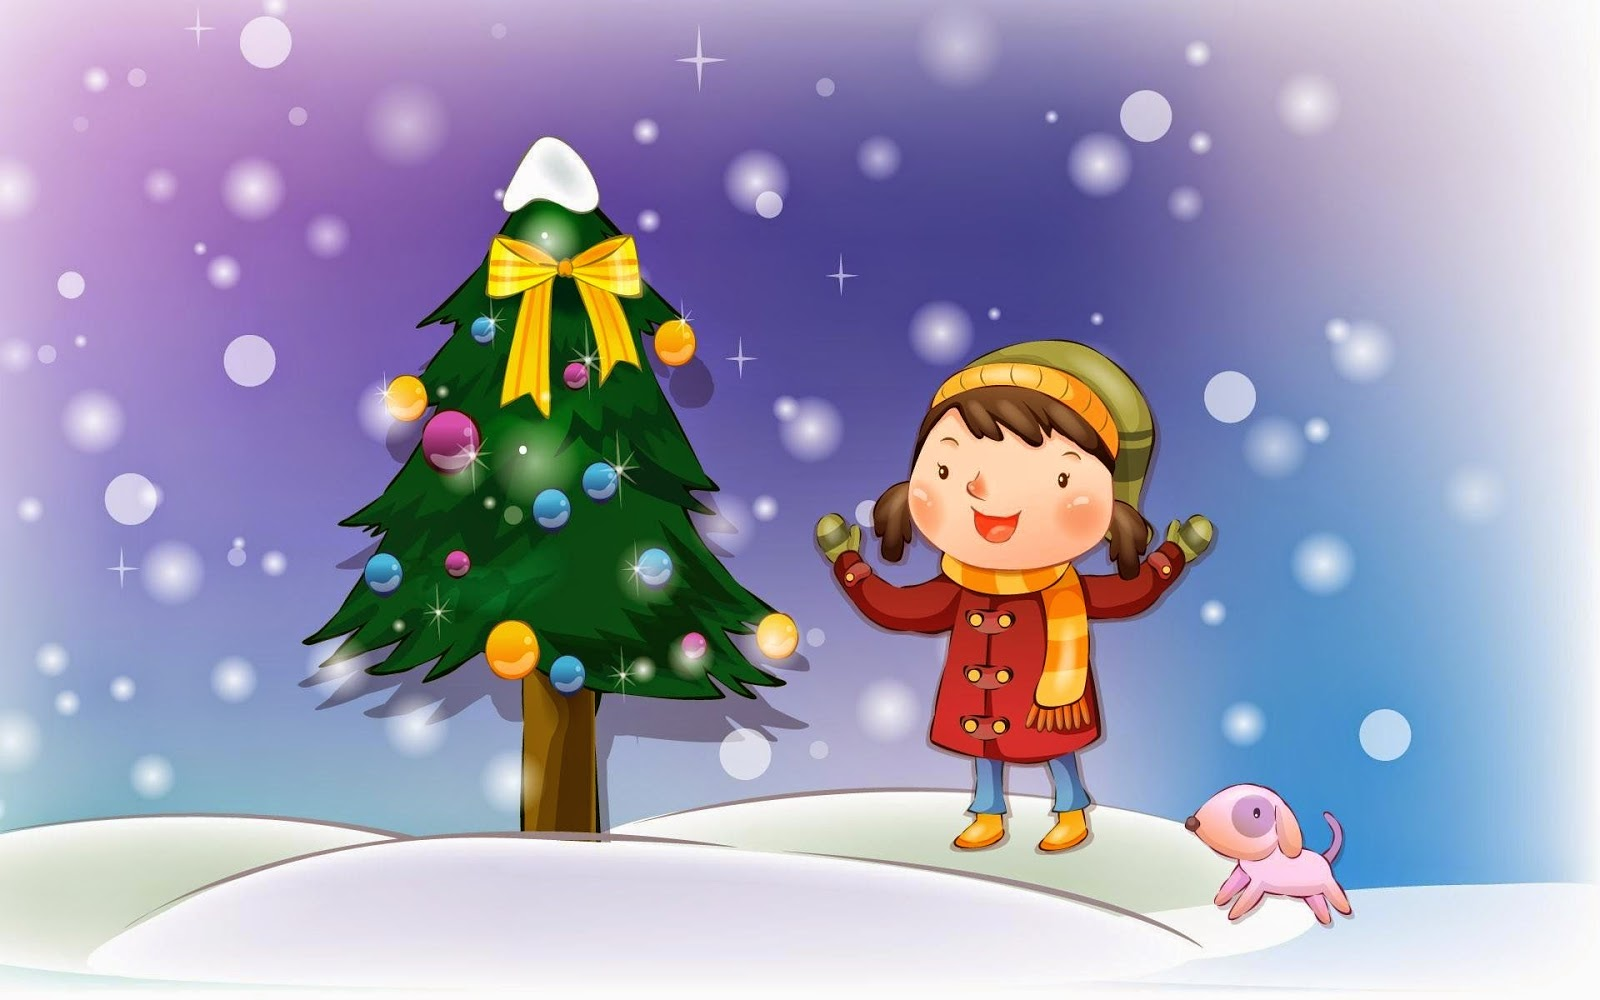 cute-little-kid-with-puppy-in-snow-xmas-tree-christmas-time-animation-cartoon-wallpapers.jpg